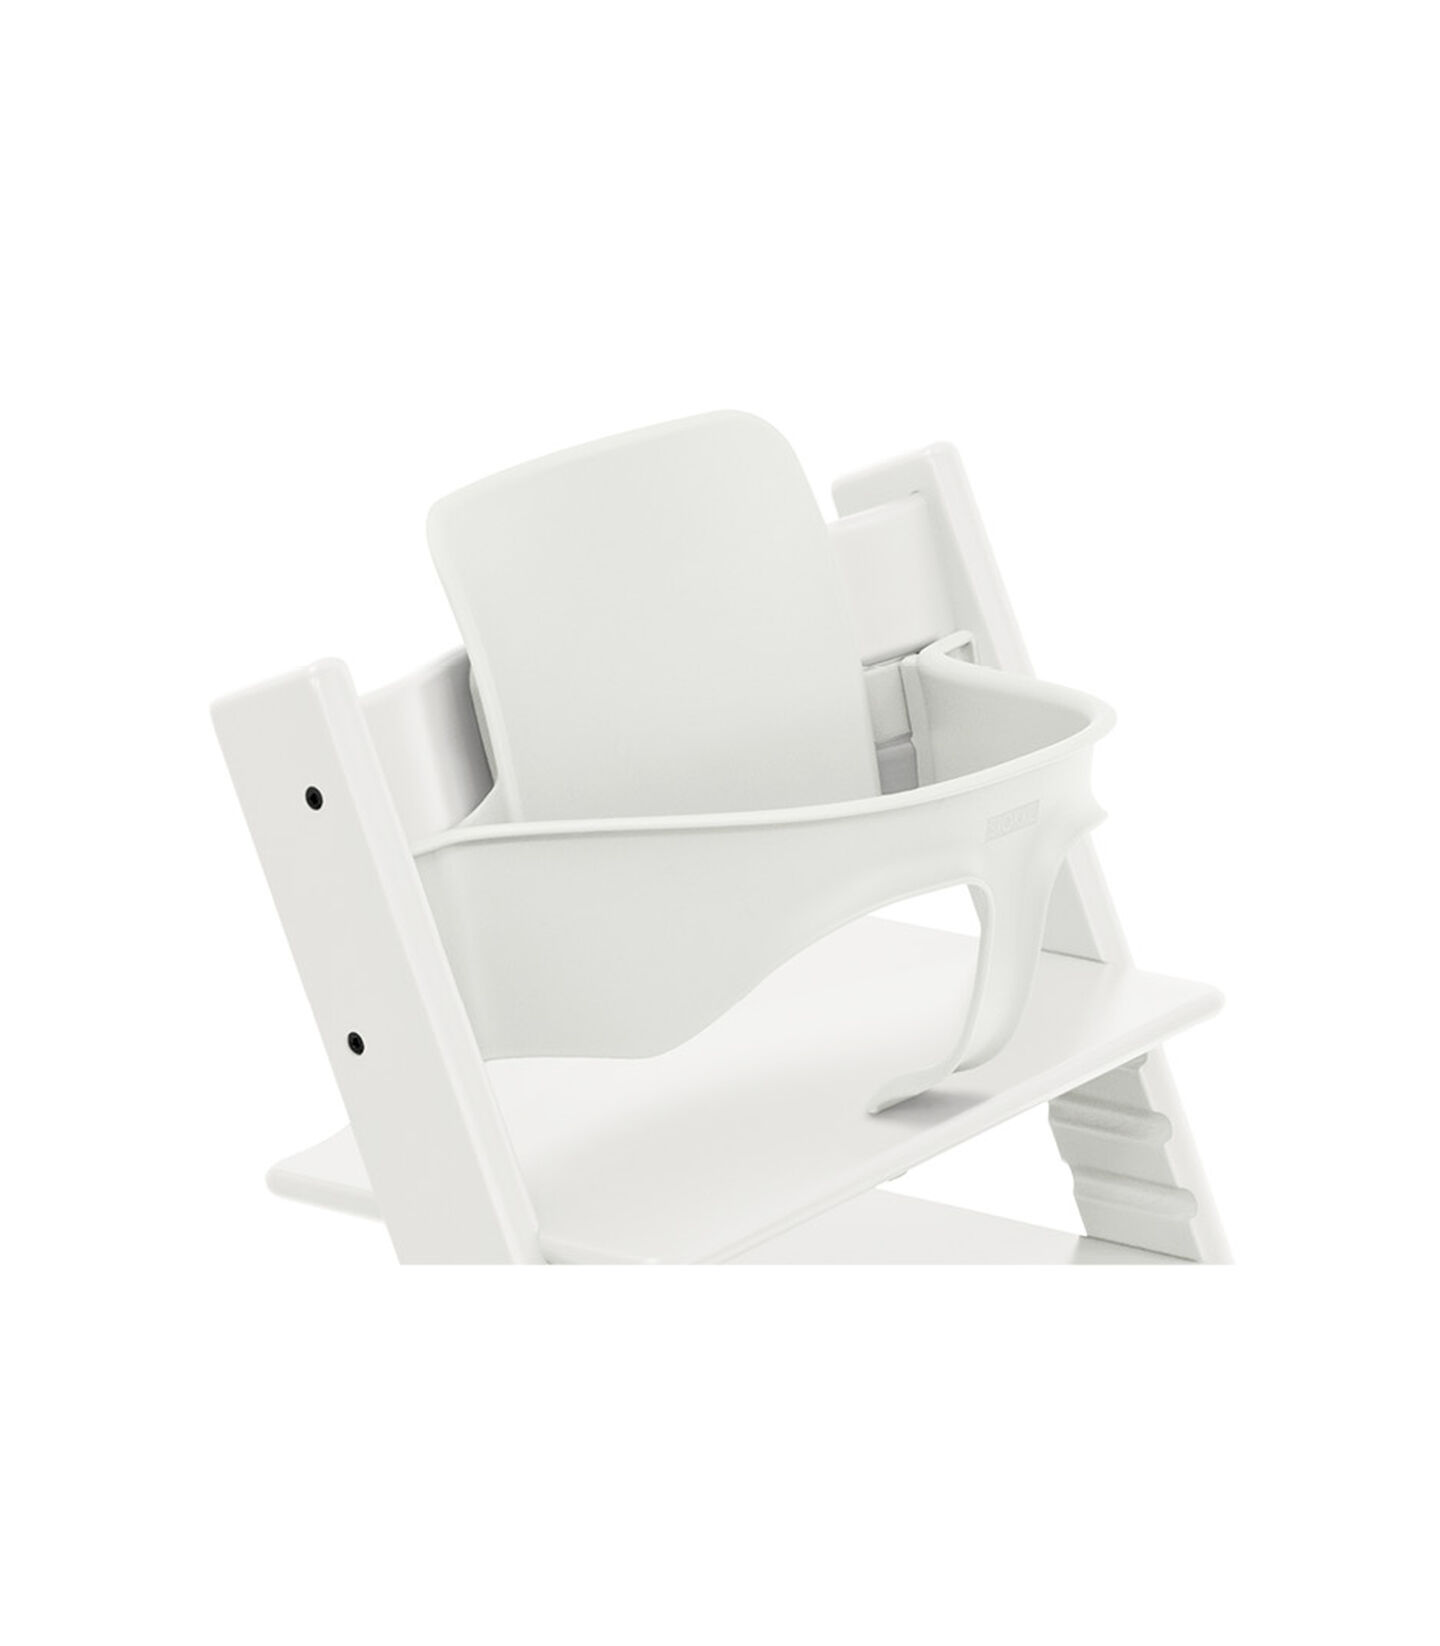 Tripp Trapp® Baby Set Bianco, Bianco, mainview view 2